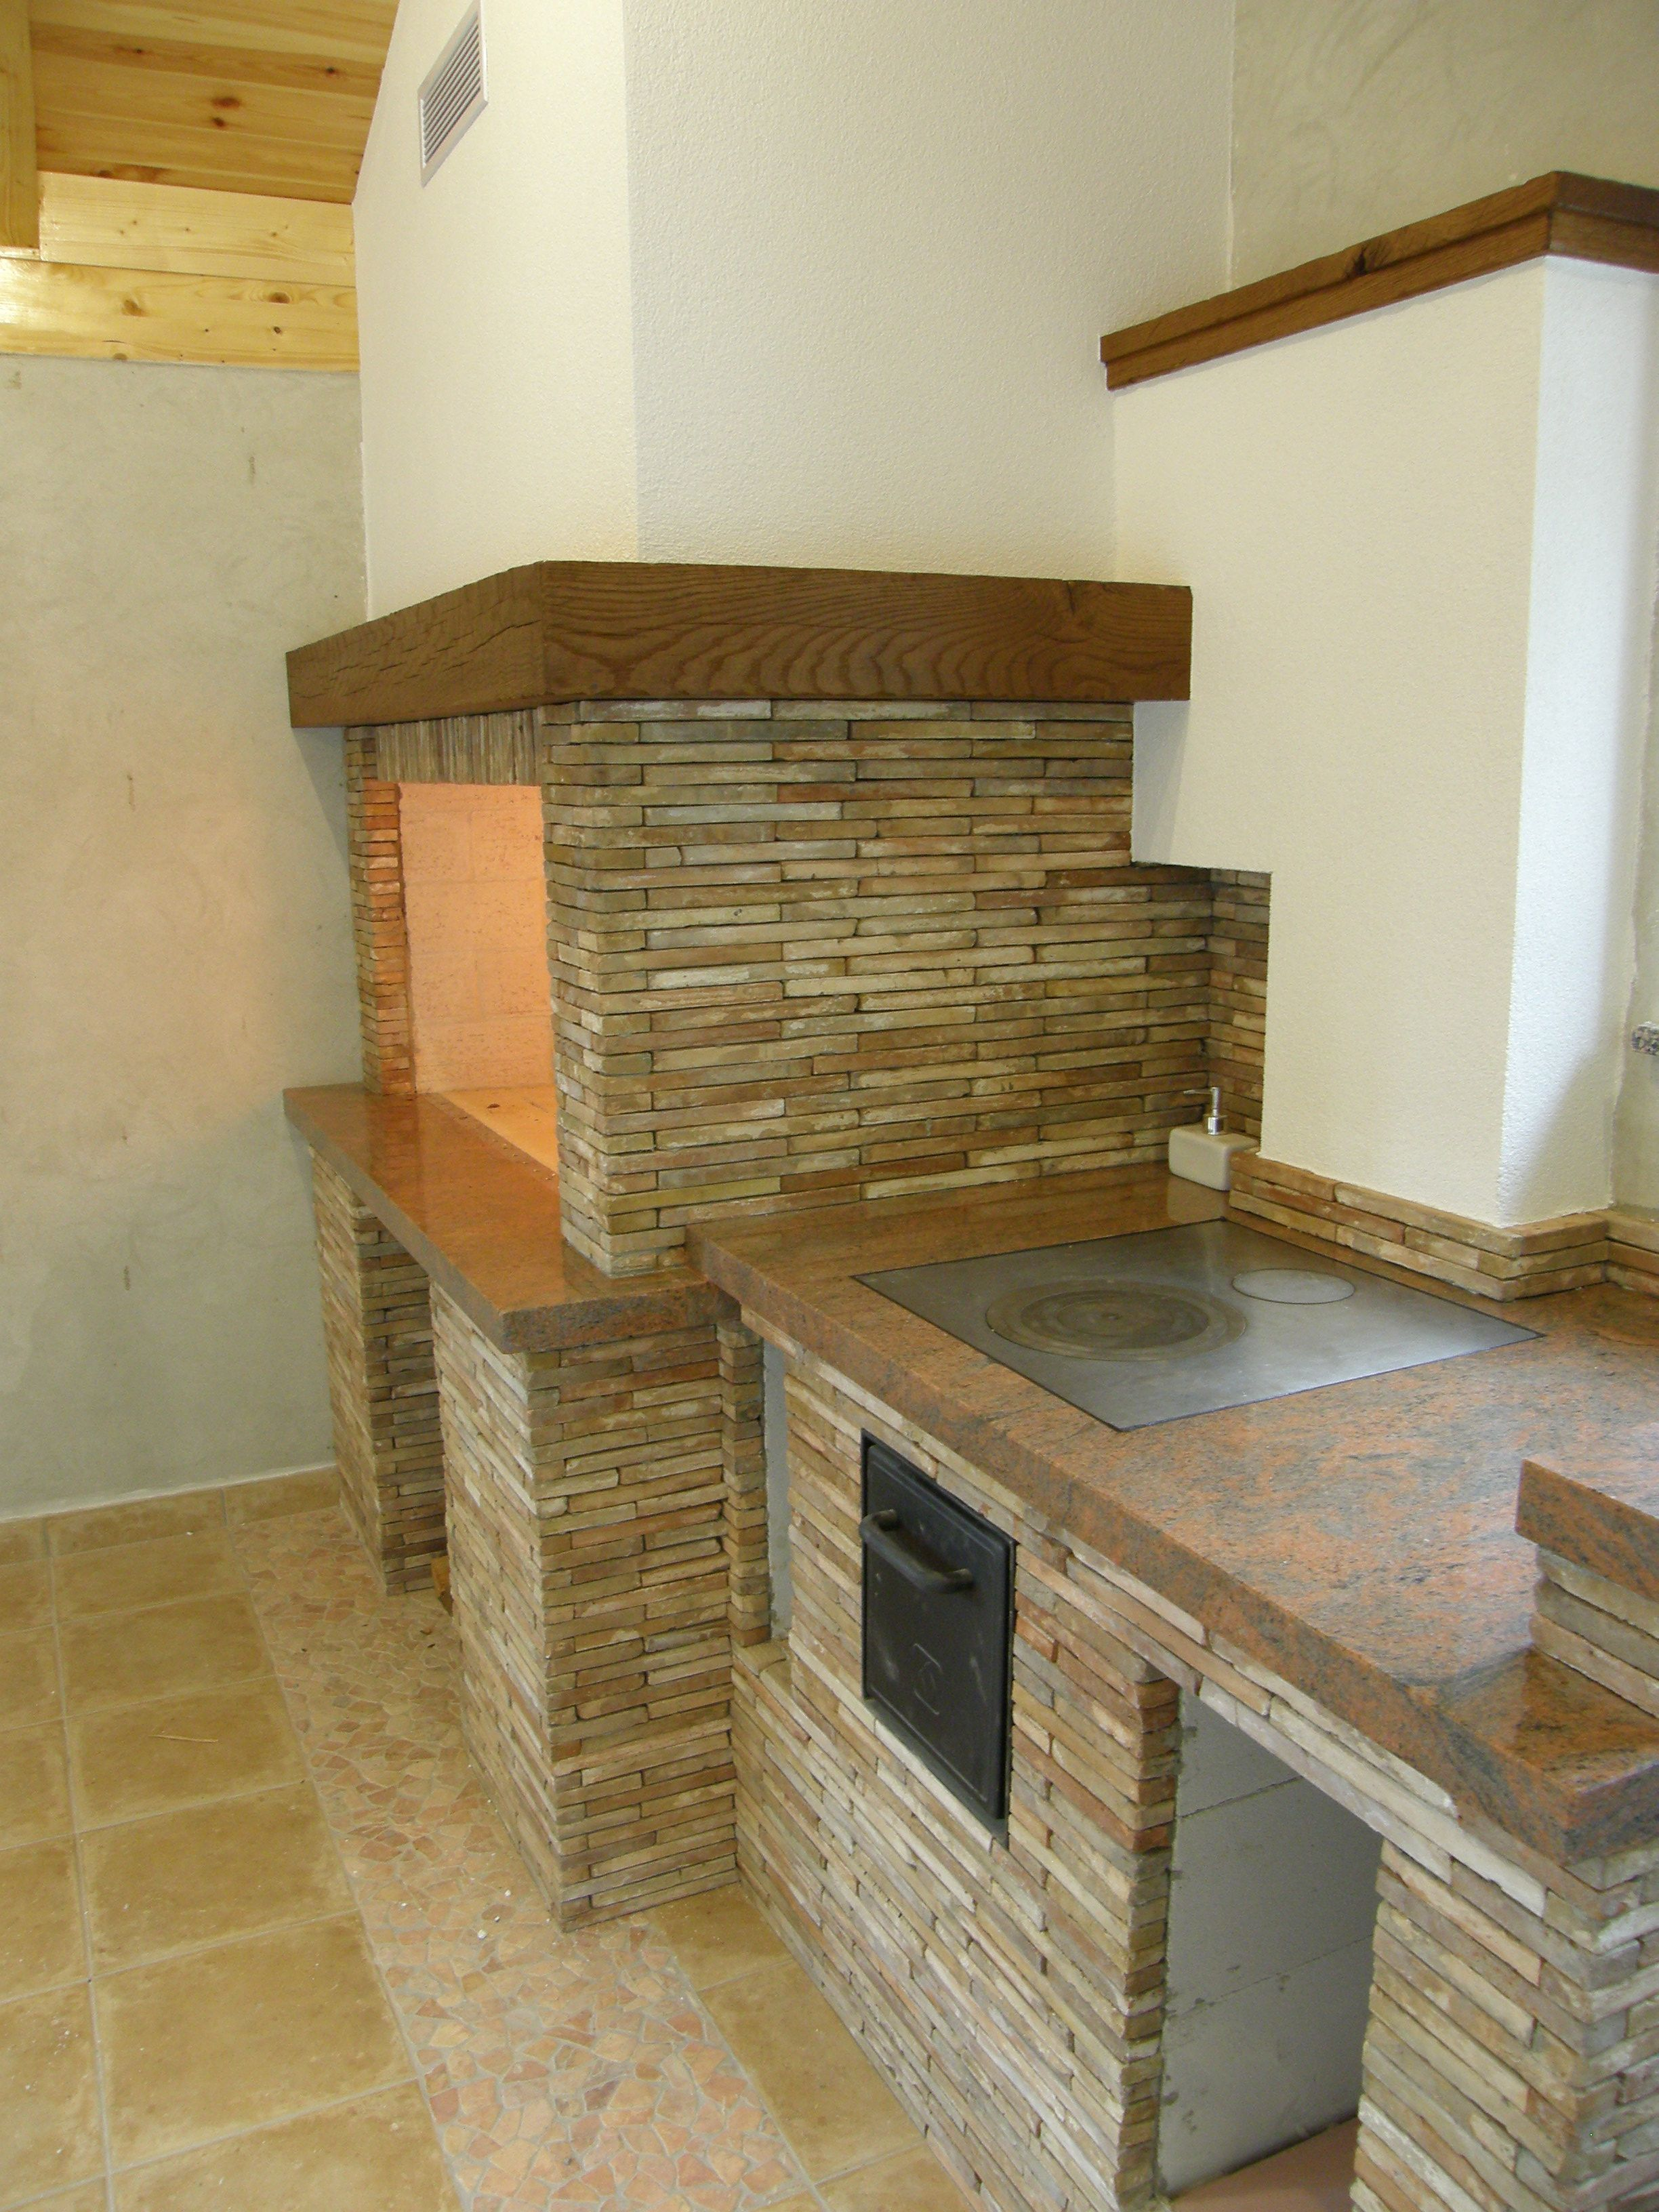 Fireplaces And Kitchen Range Stone Multicolor And Oak Beams Design